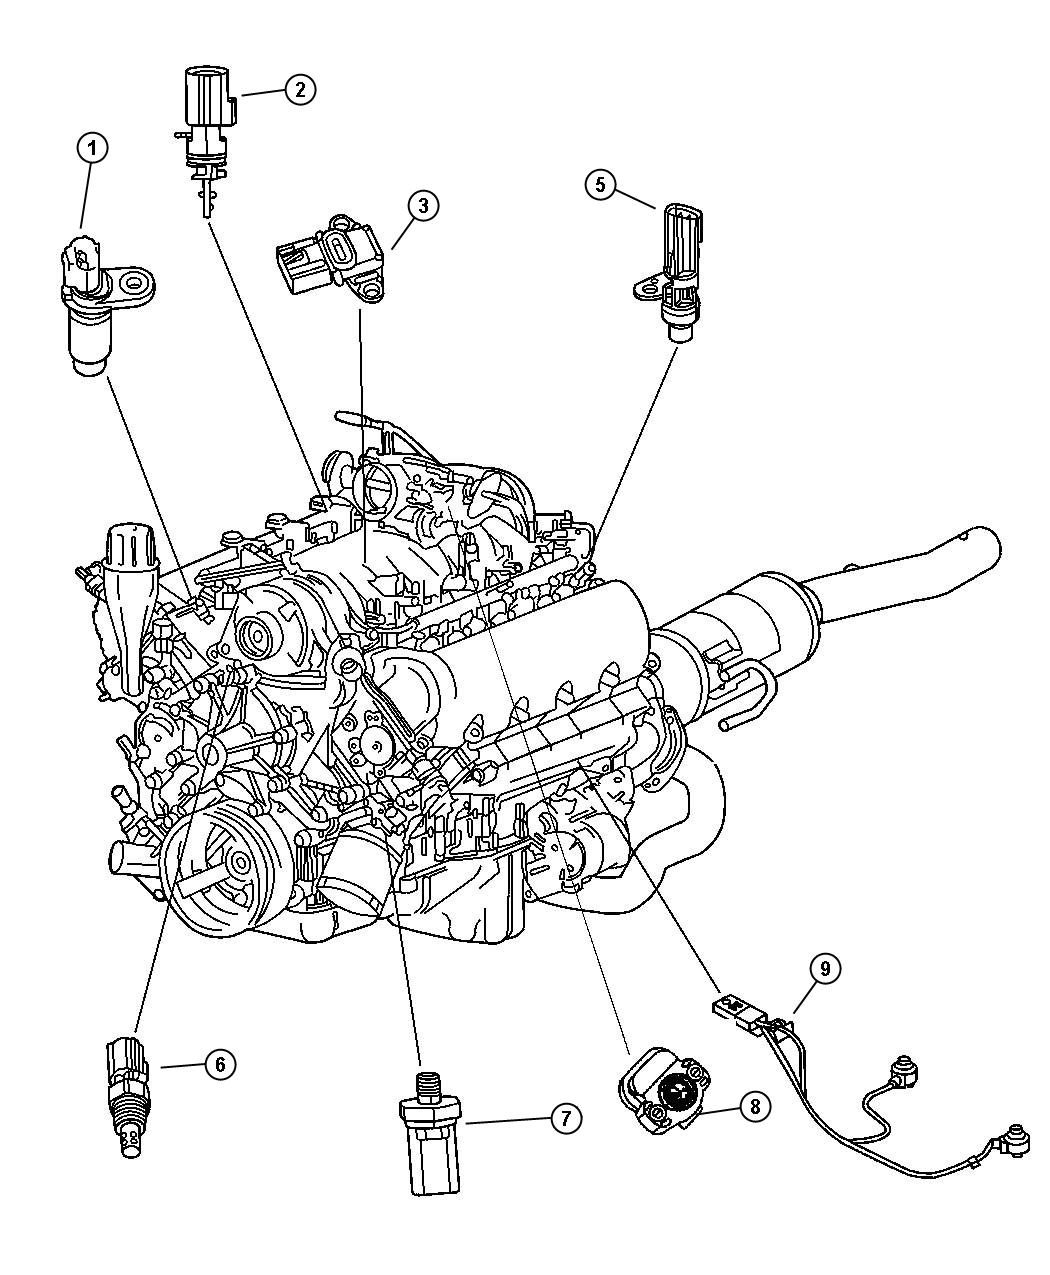 Wiring Diagram For A 98 Dodge Ram 1500 4 By 4 5.2 L